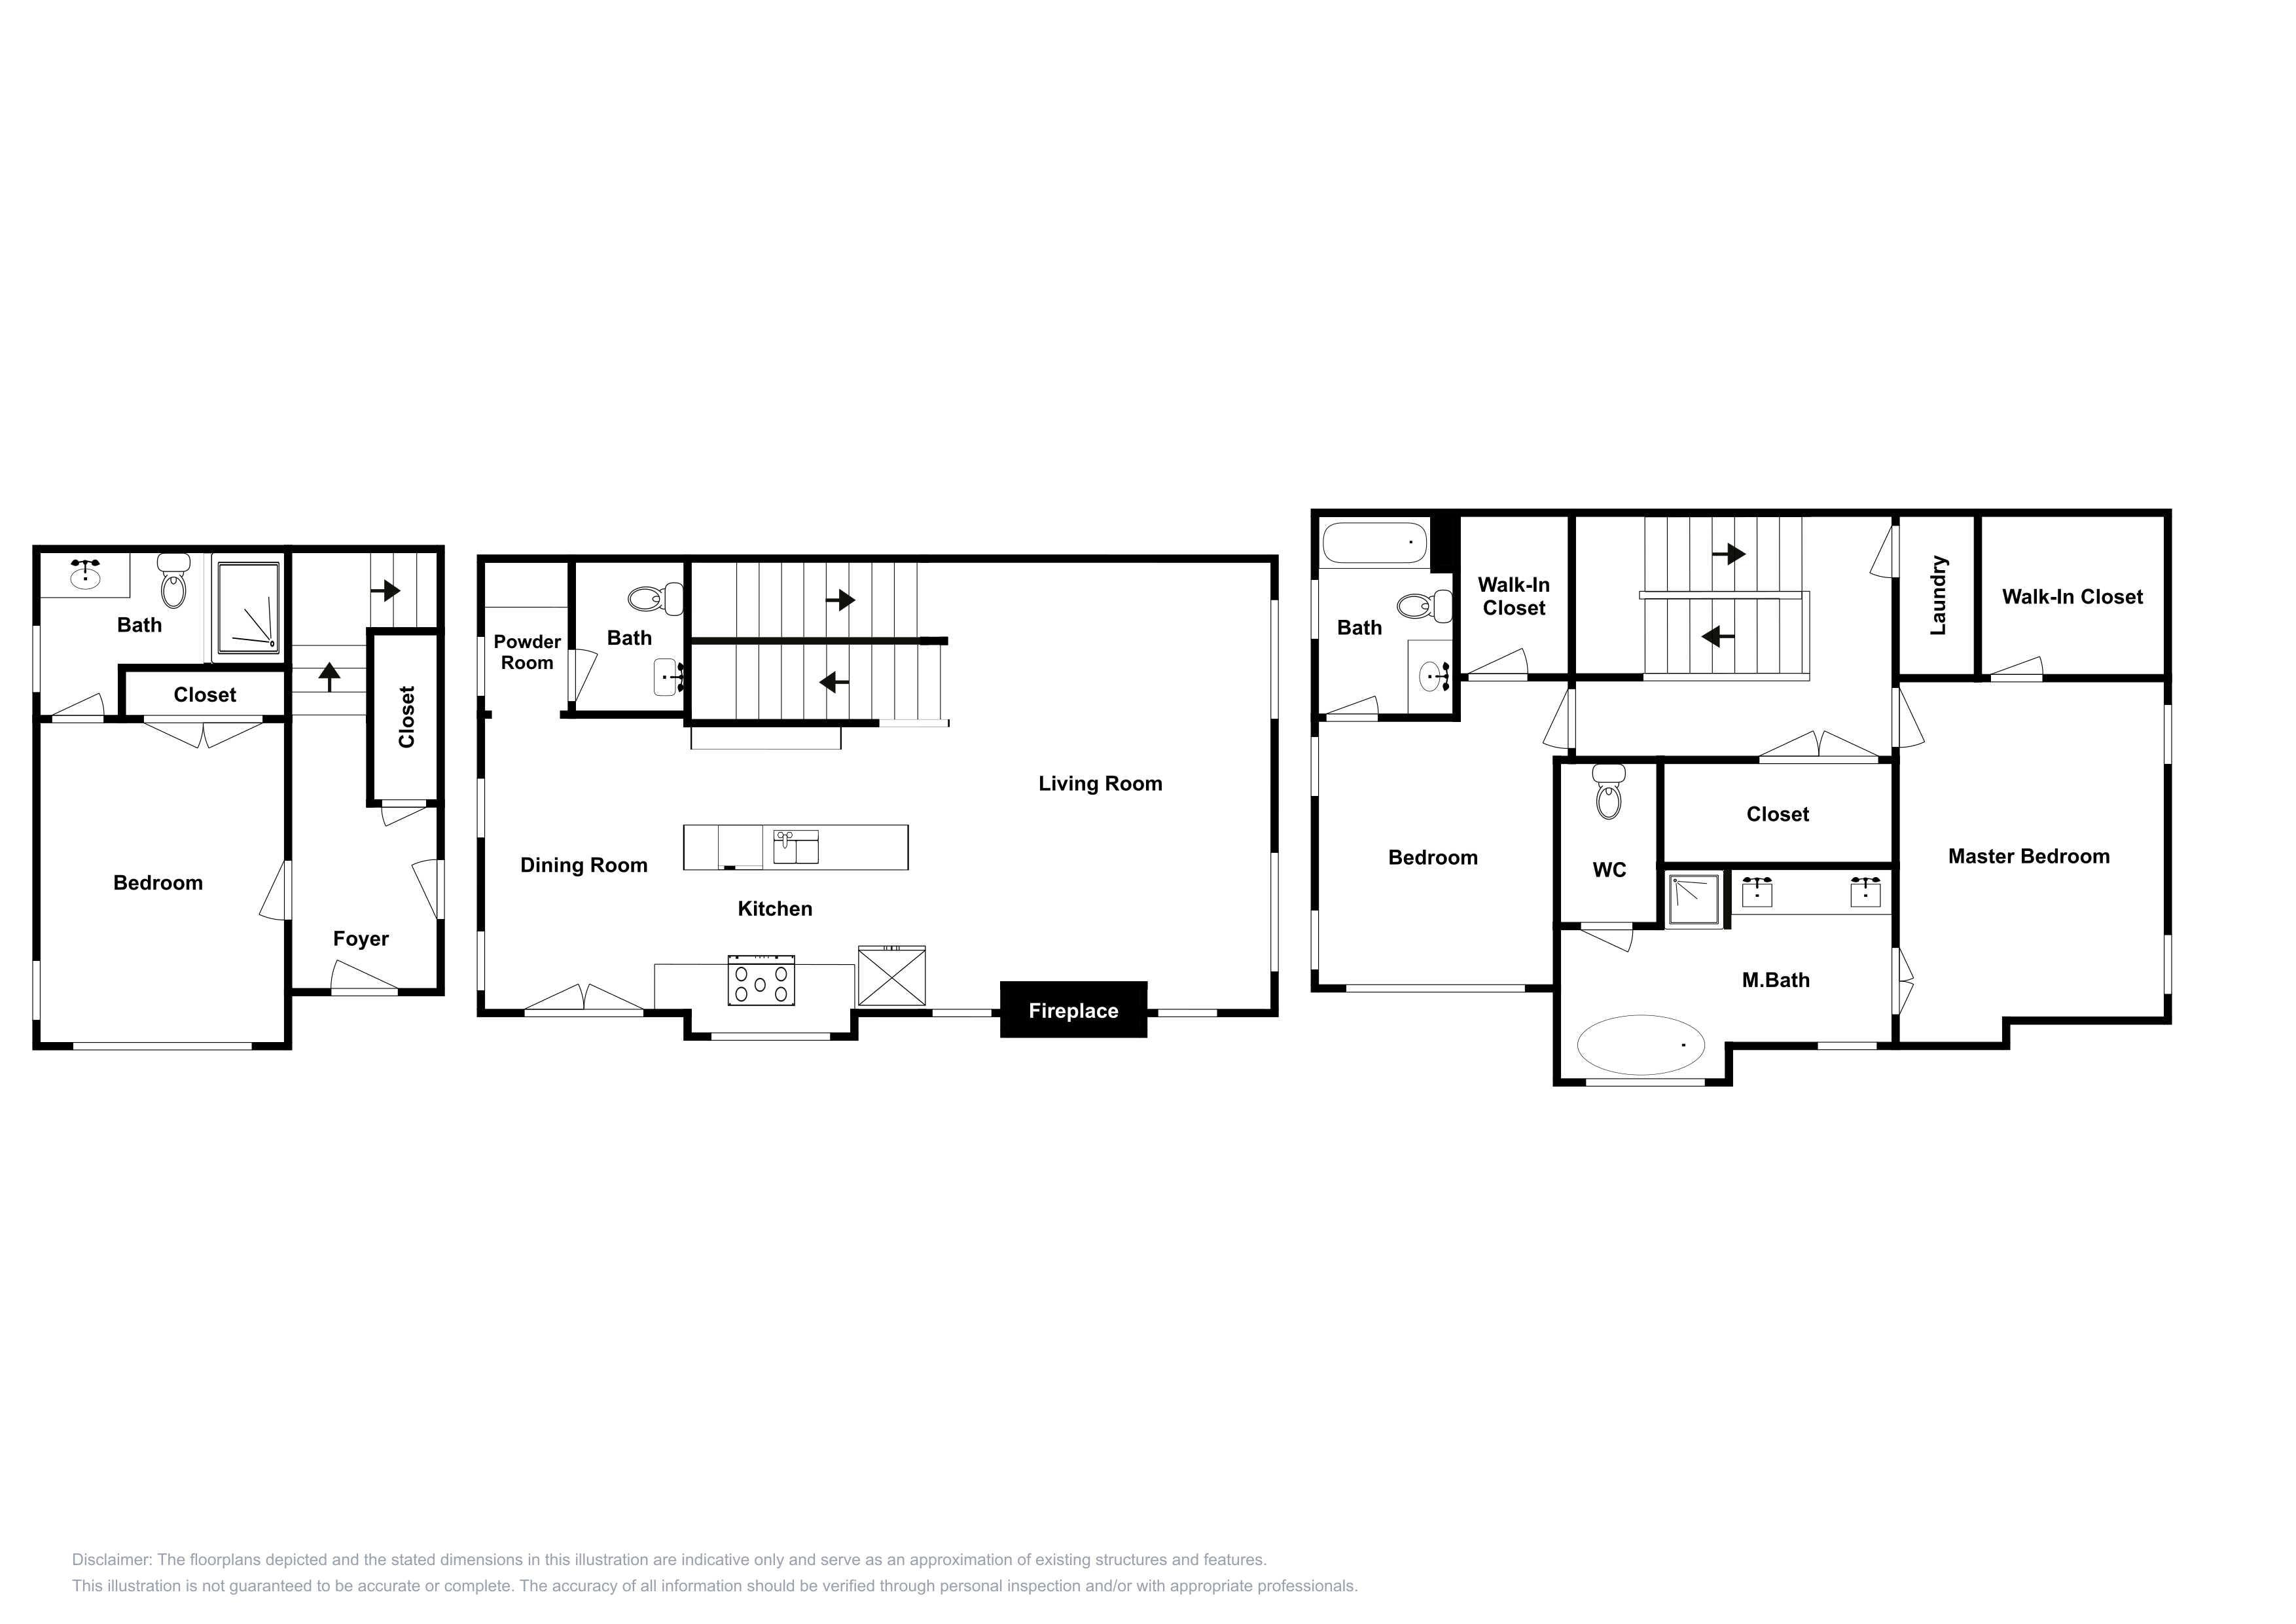 Unit 3: This floor plan is an approximation and may not include the most recent information.